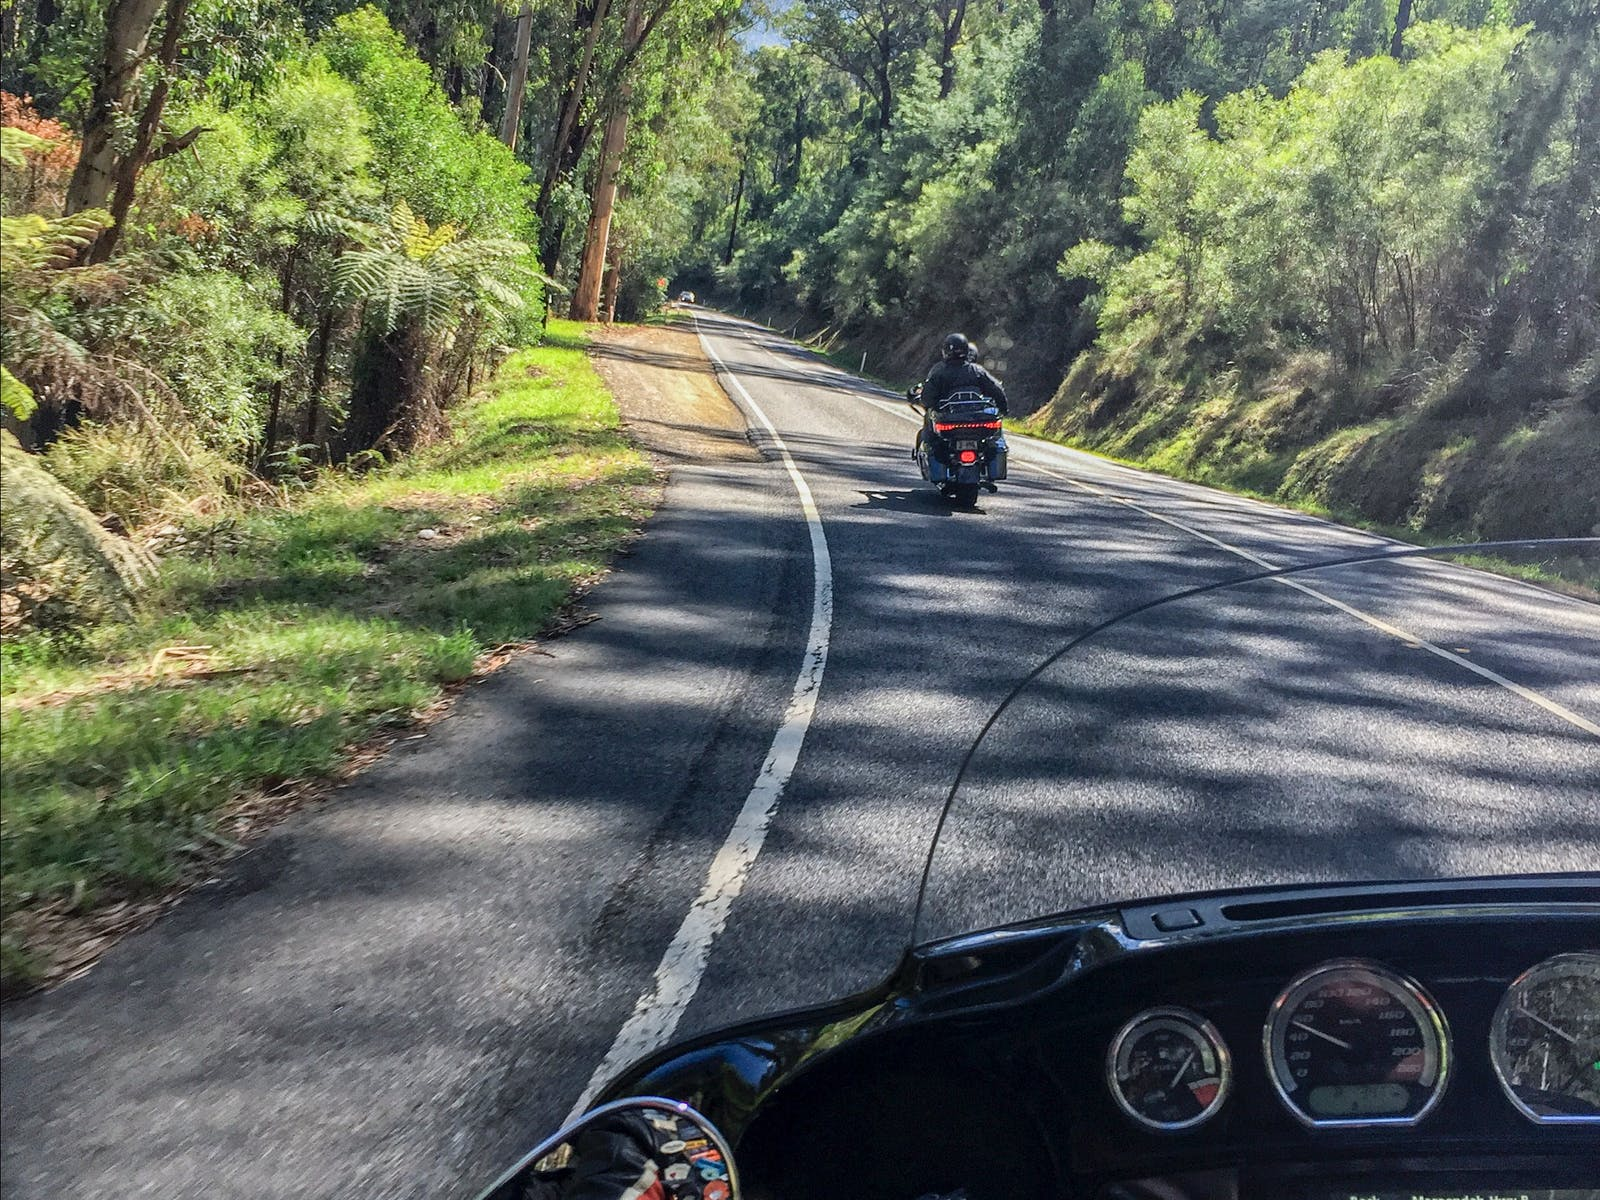 There are no unobstructed views when you are a pillion passenger on a Harley Davidson motorcycle